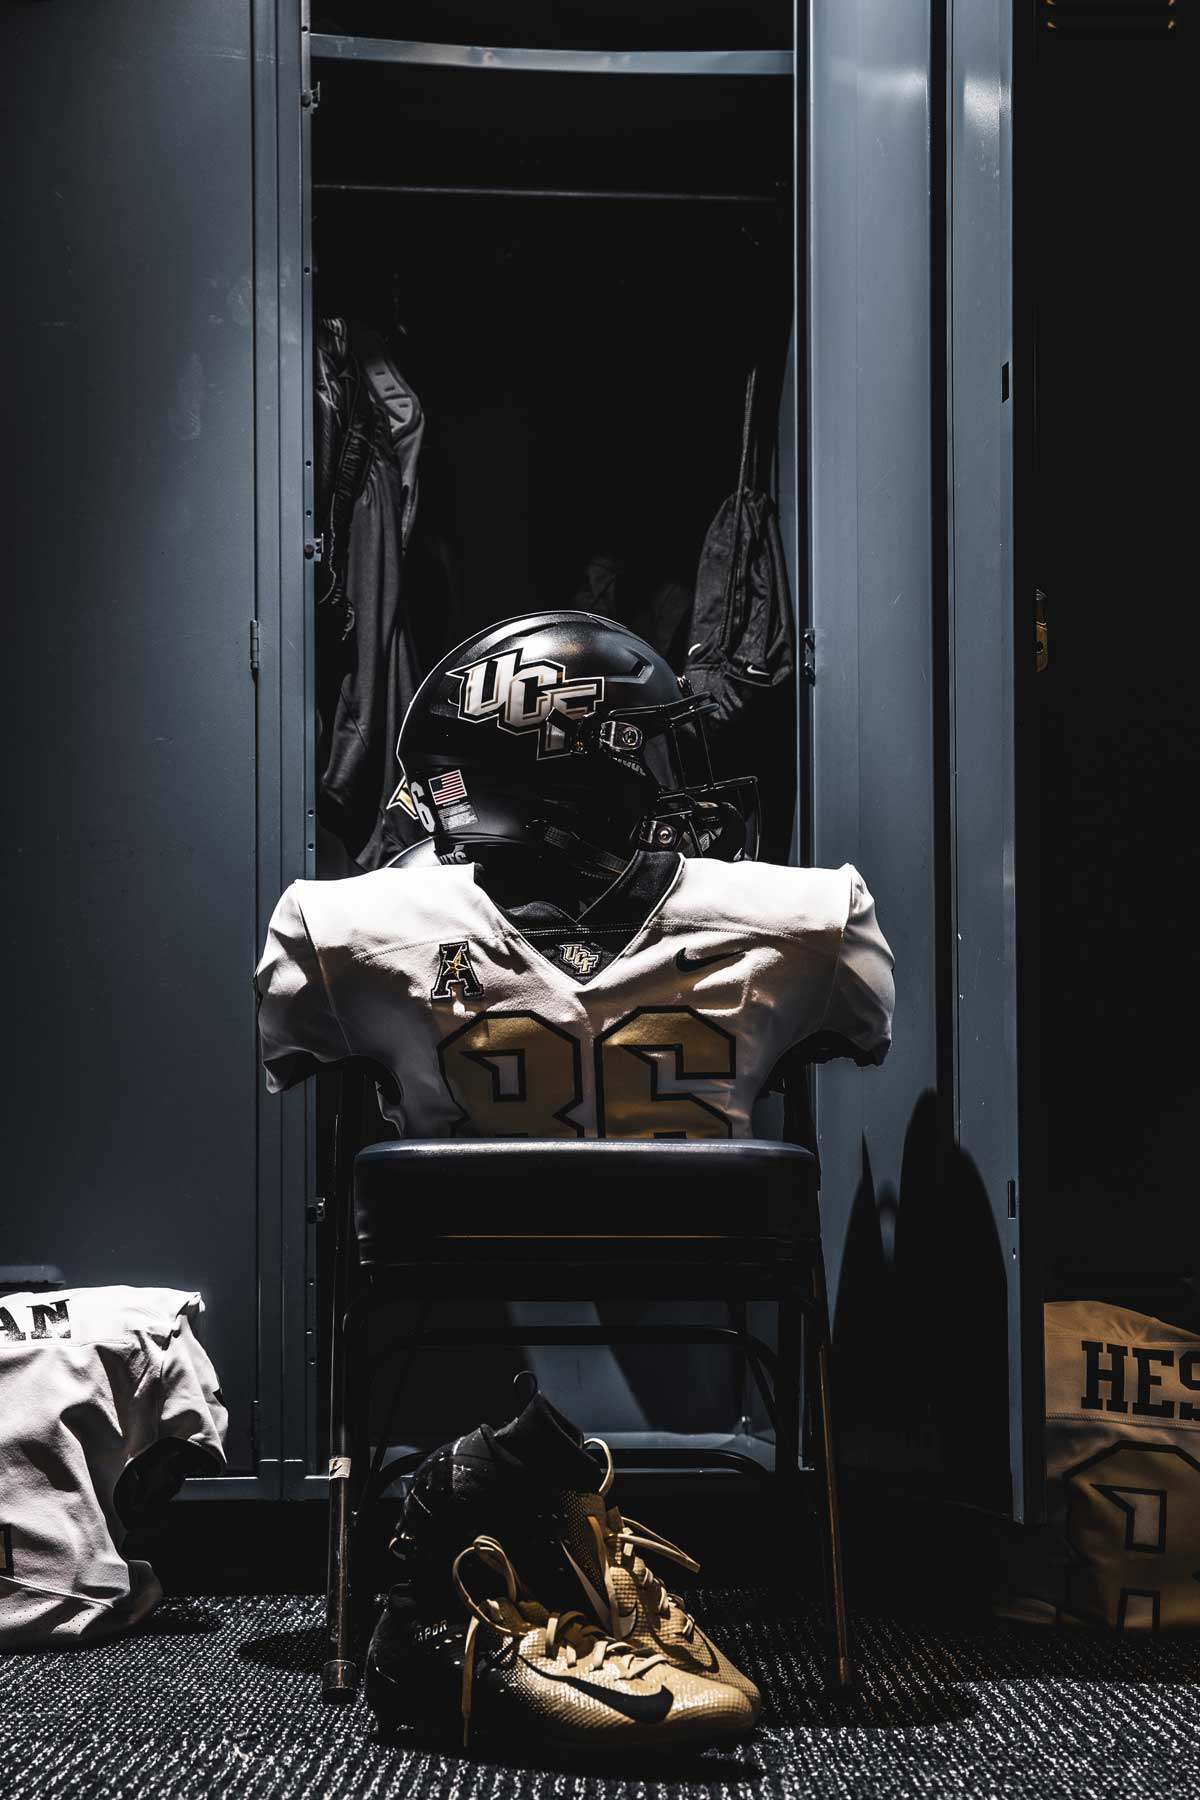 black helmet and white jersey in front of locker